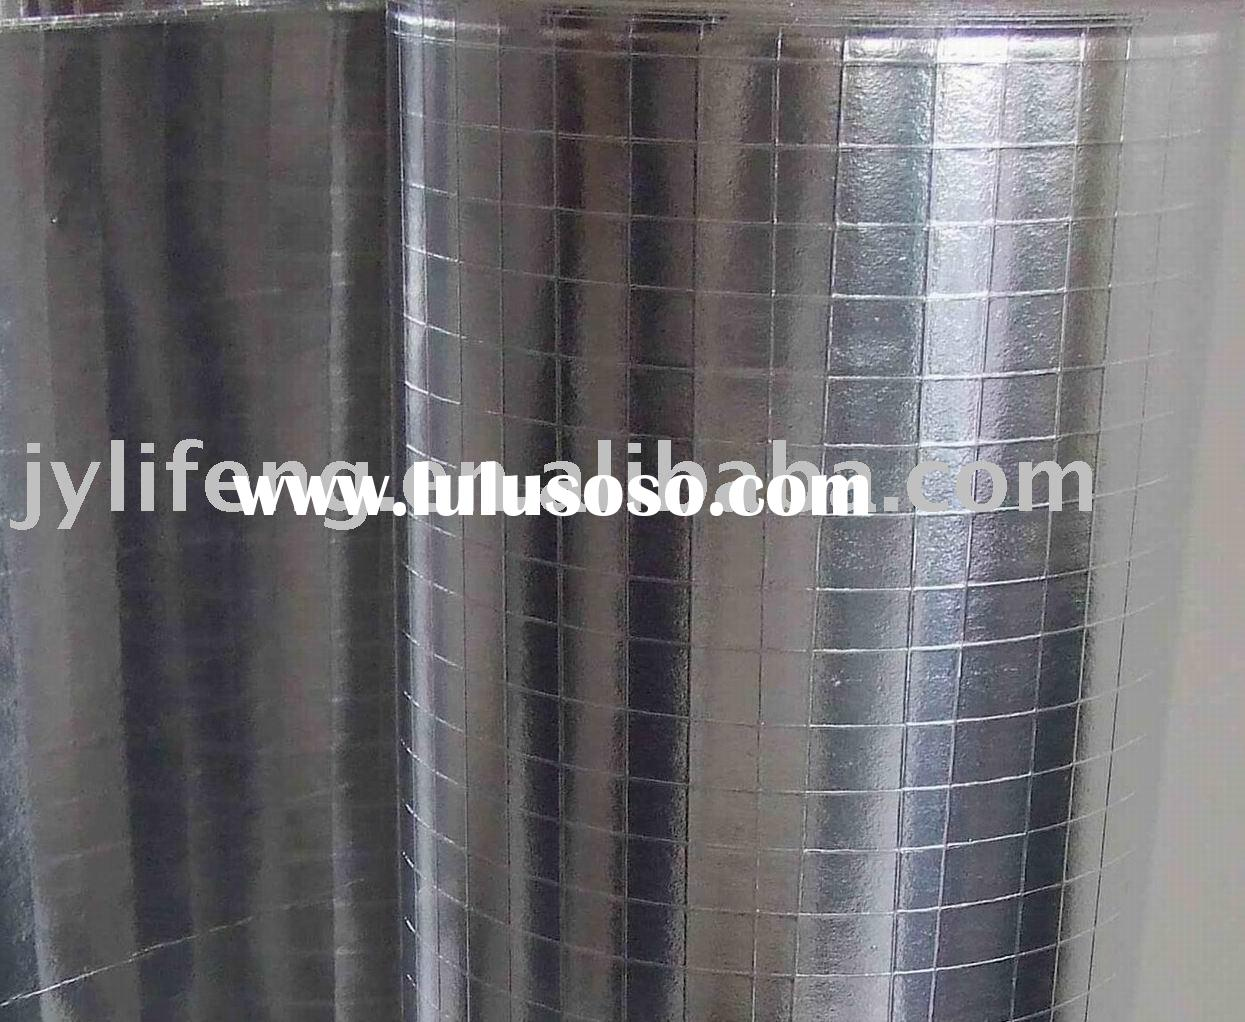 hvac system insulation products Manufacturers in LuLuSoSo.com page 1 #5B6370